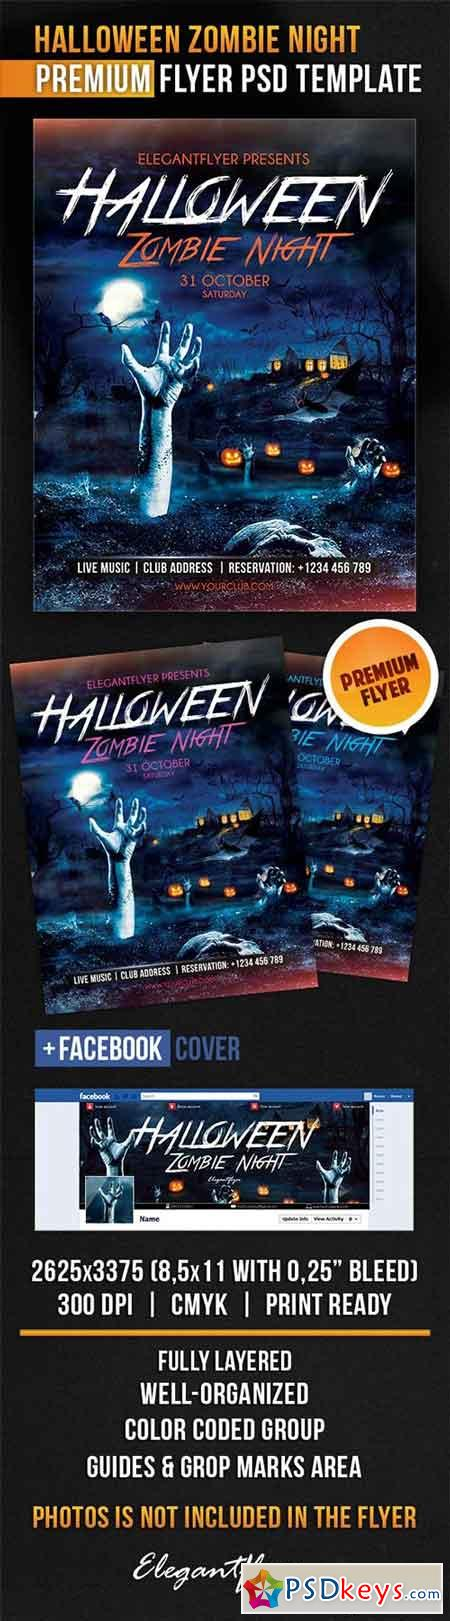 Halloween Zombie Night Flyer PSD Template + Facebook Cover